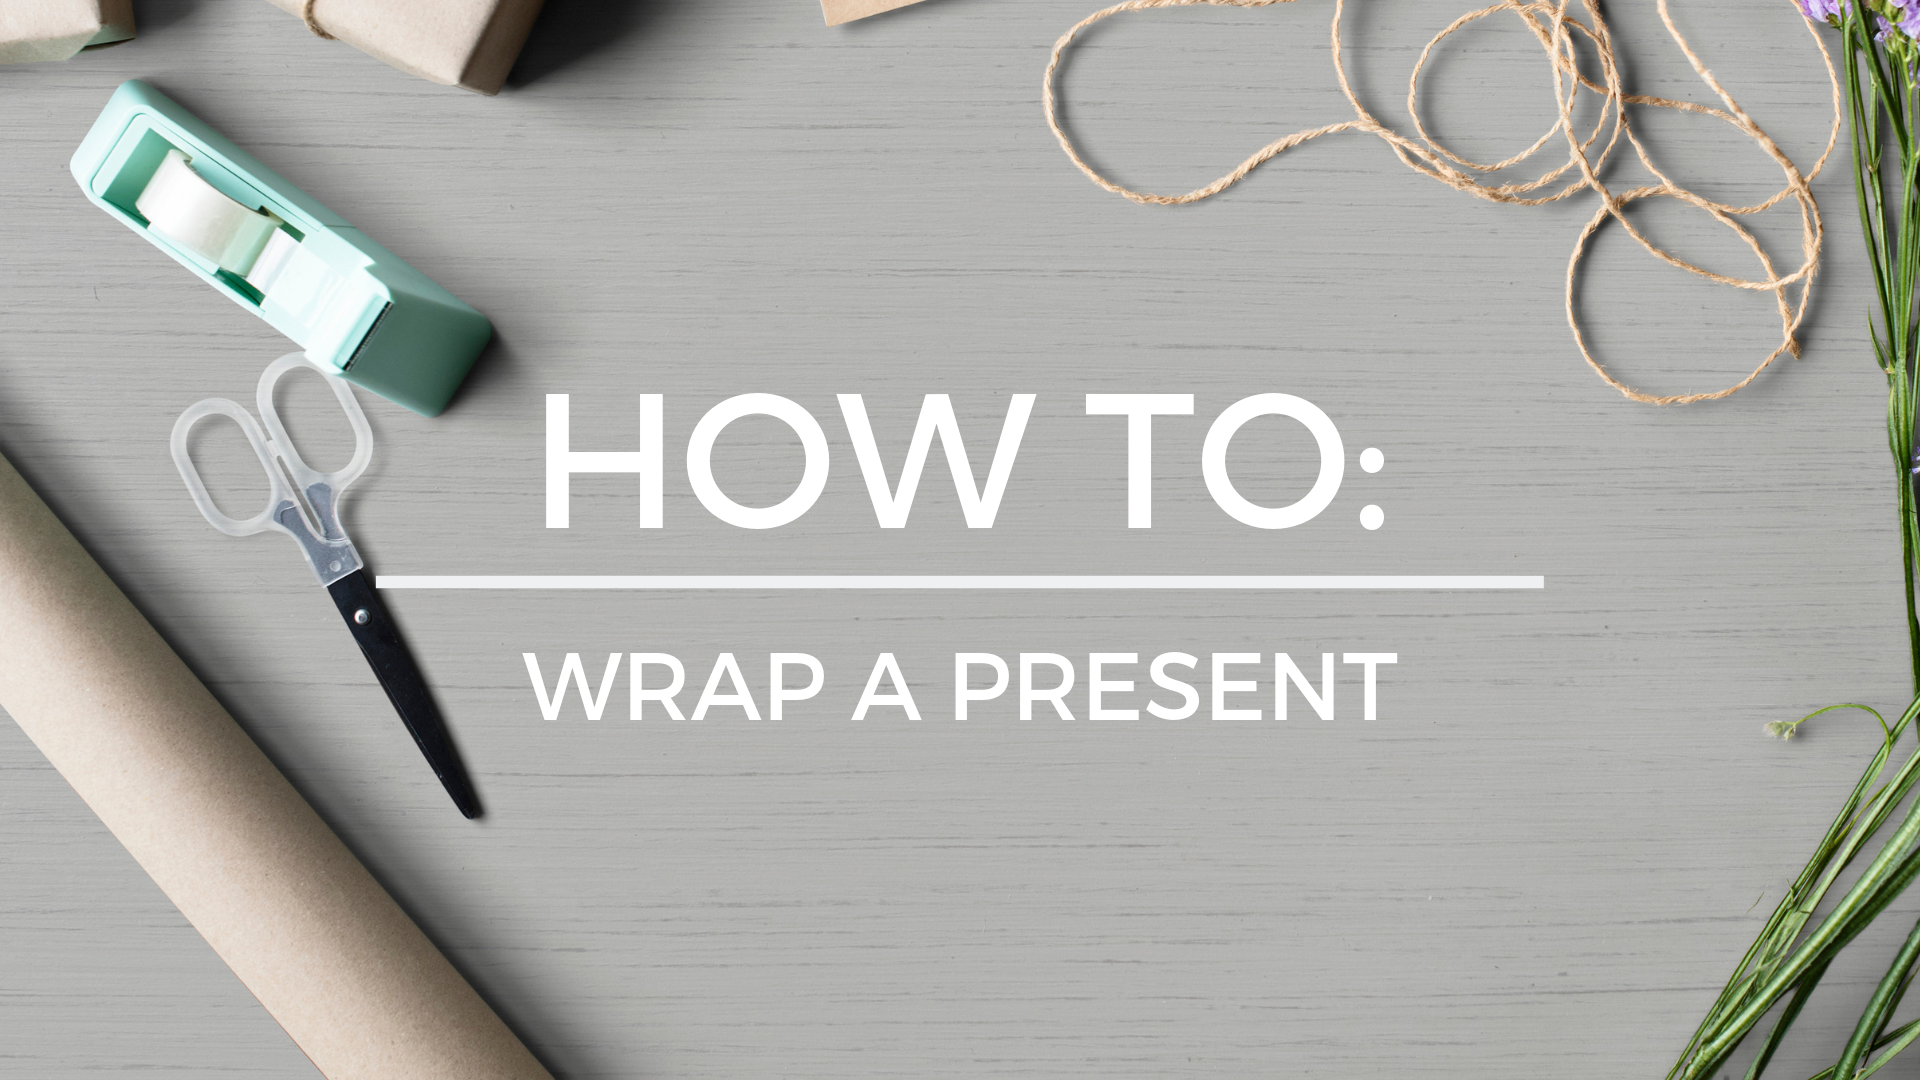 How to Wrap a Present